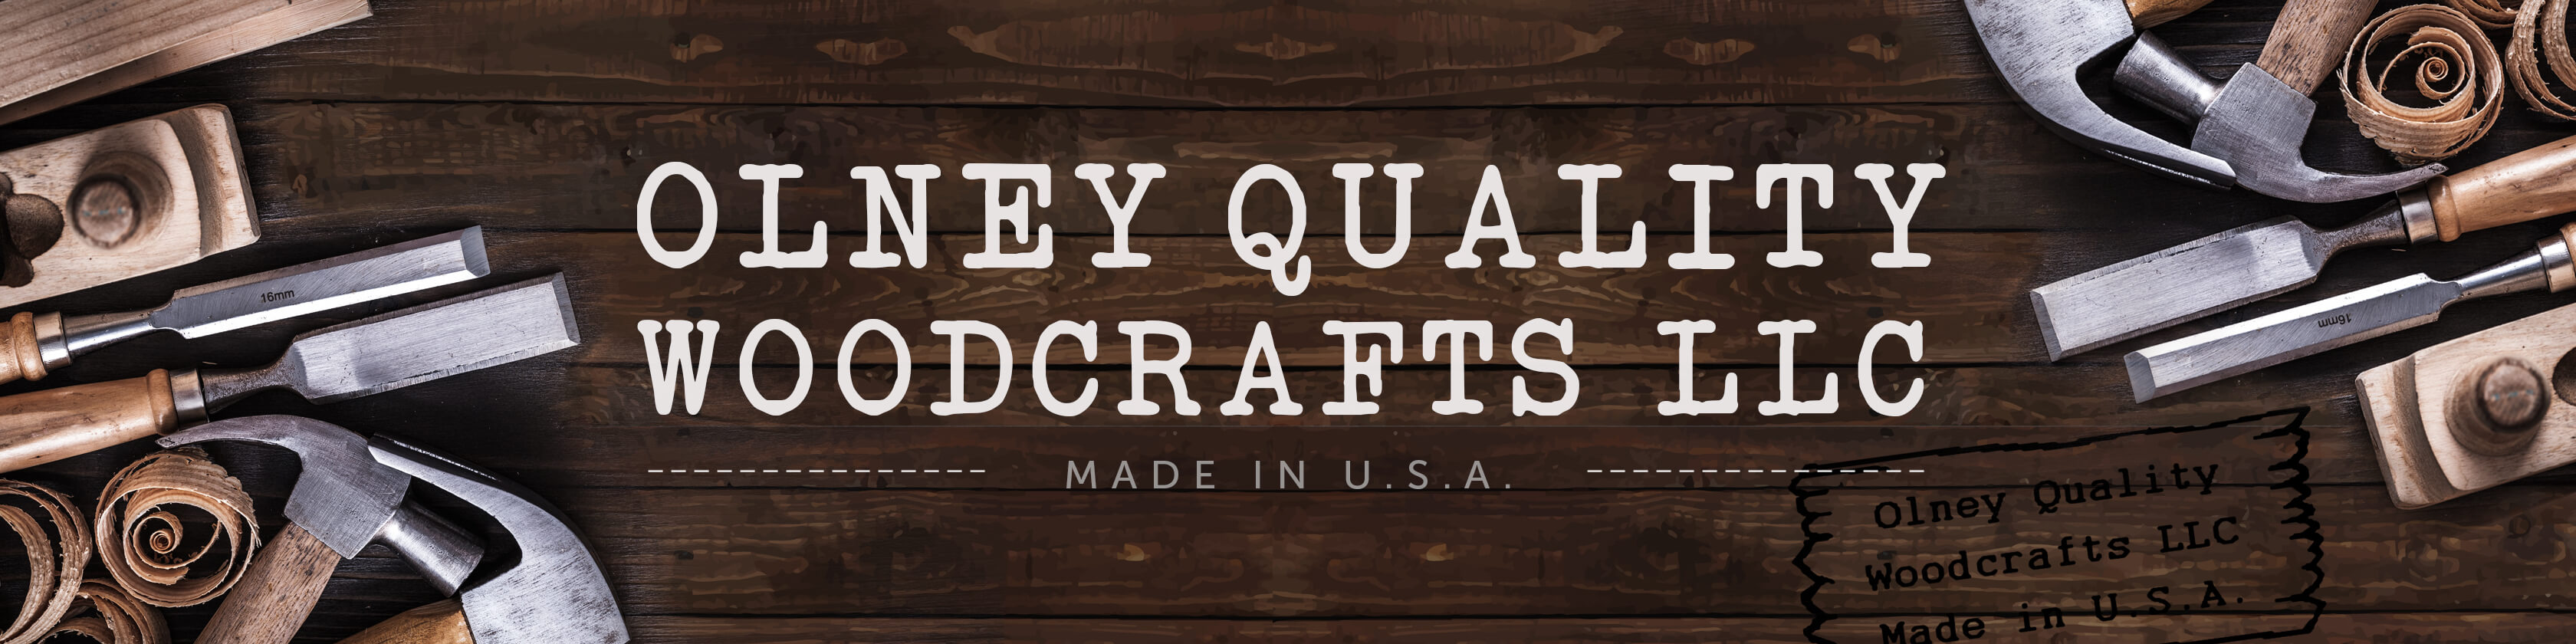 olneyqualitywoodcrafts.com Banner